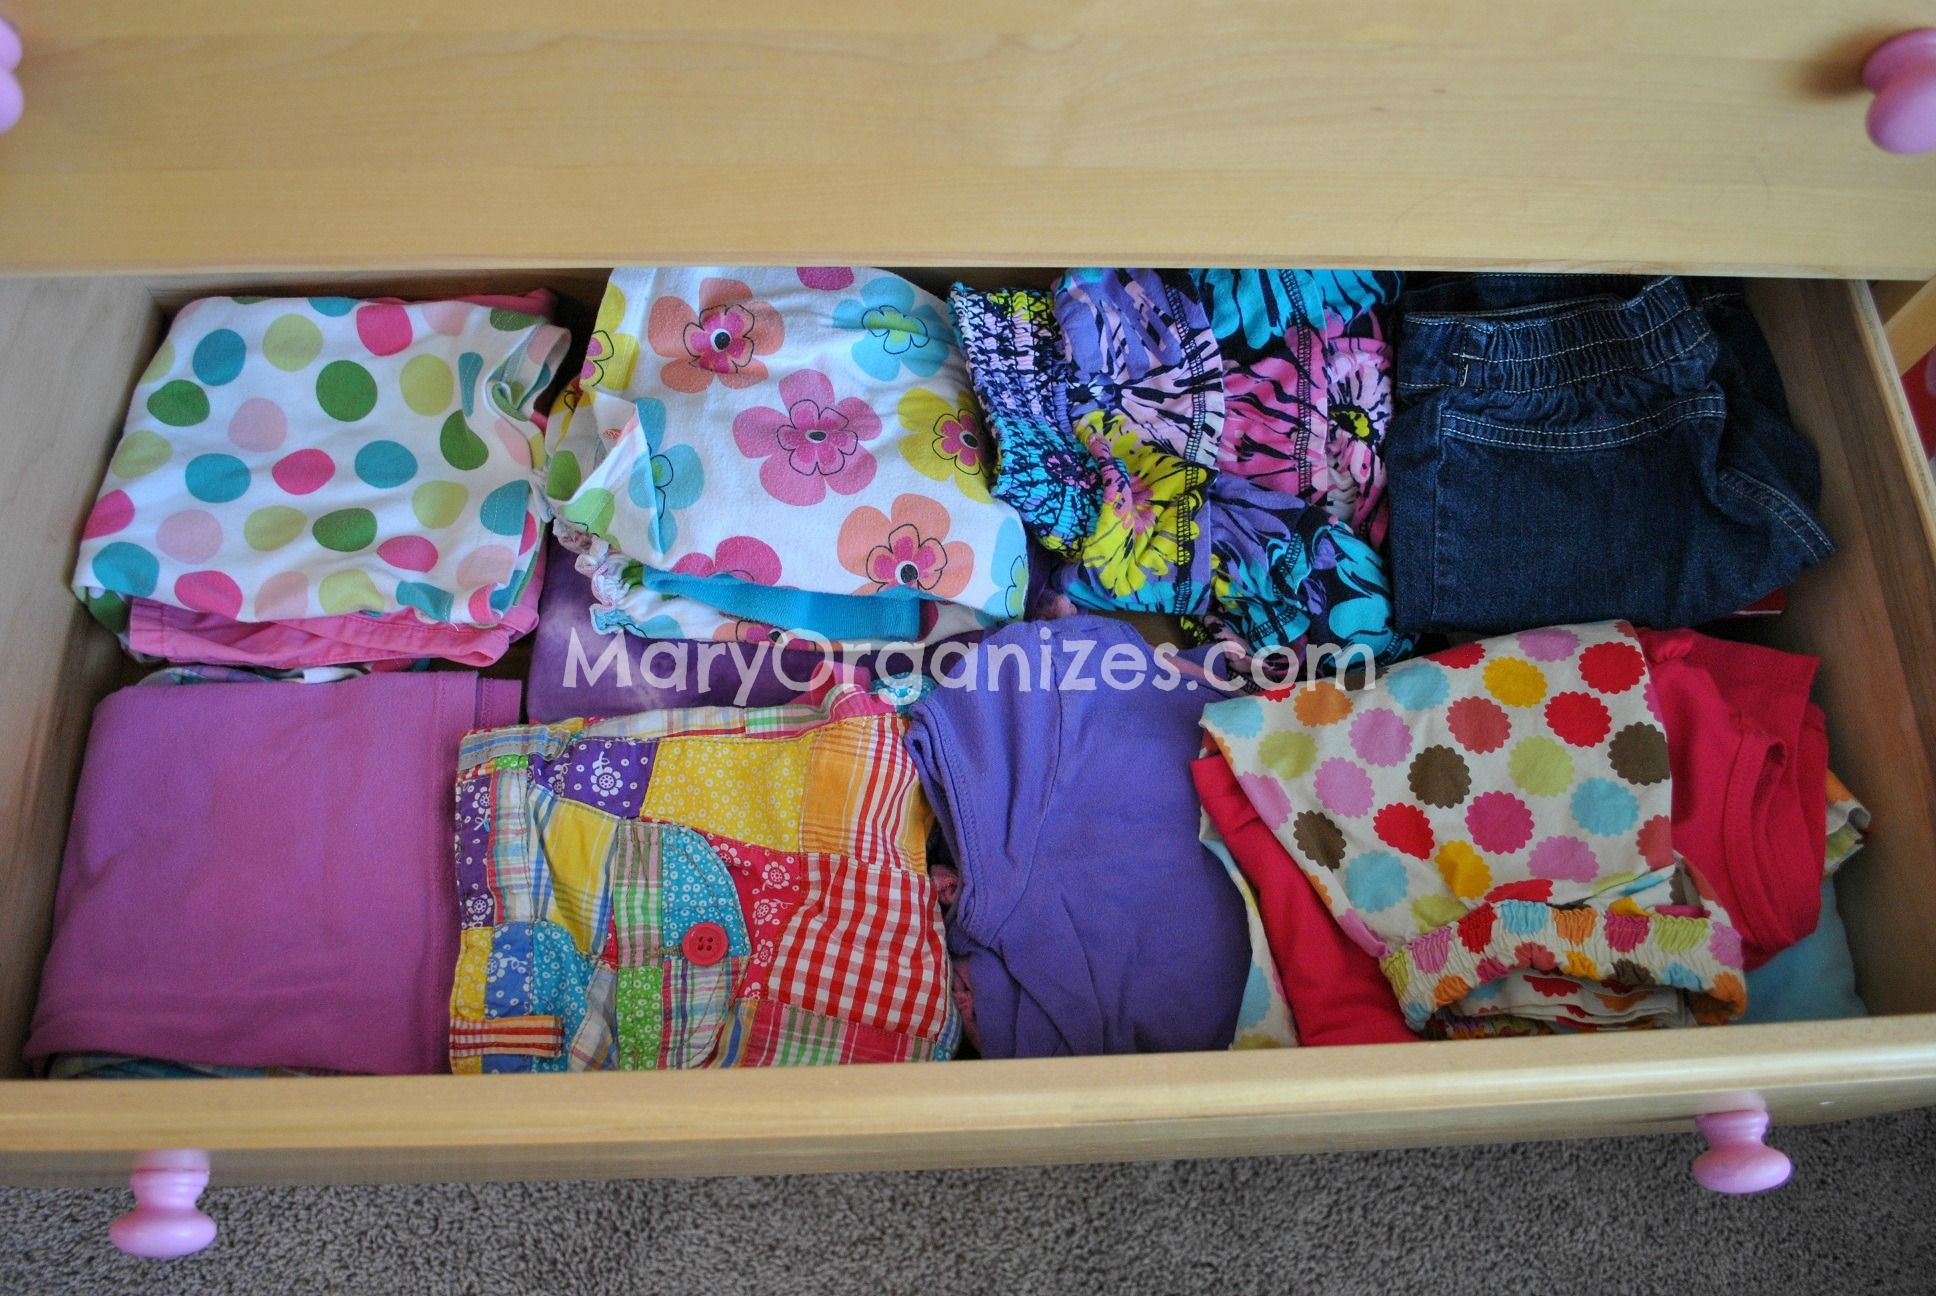 Kids clothing/laundry - Setting limits and keeping things organized